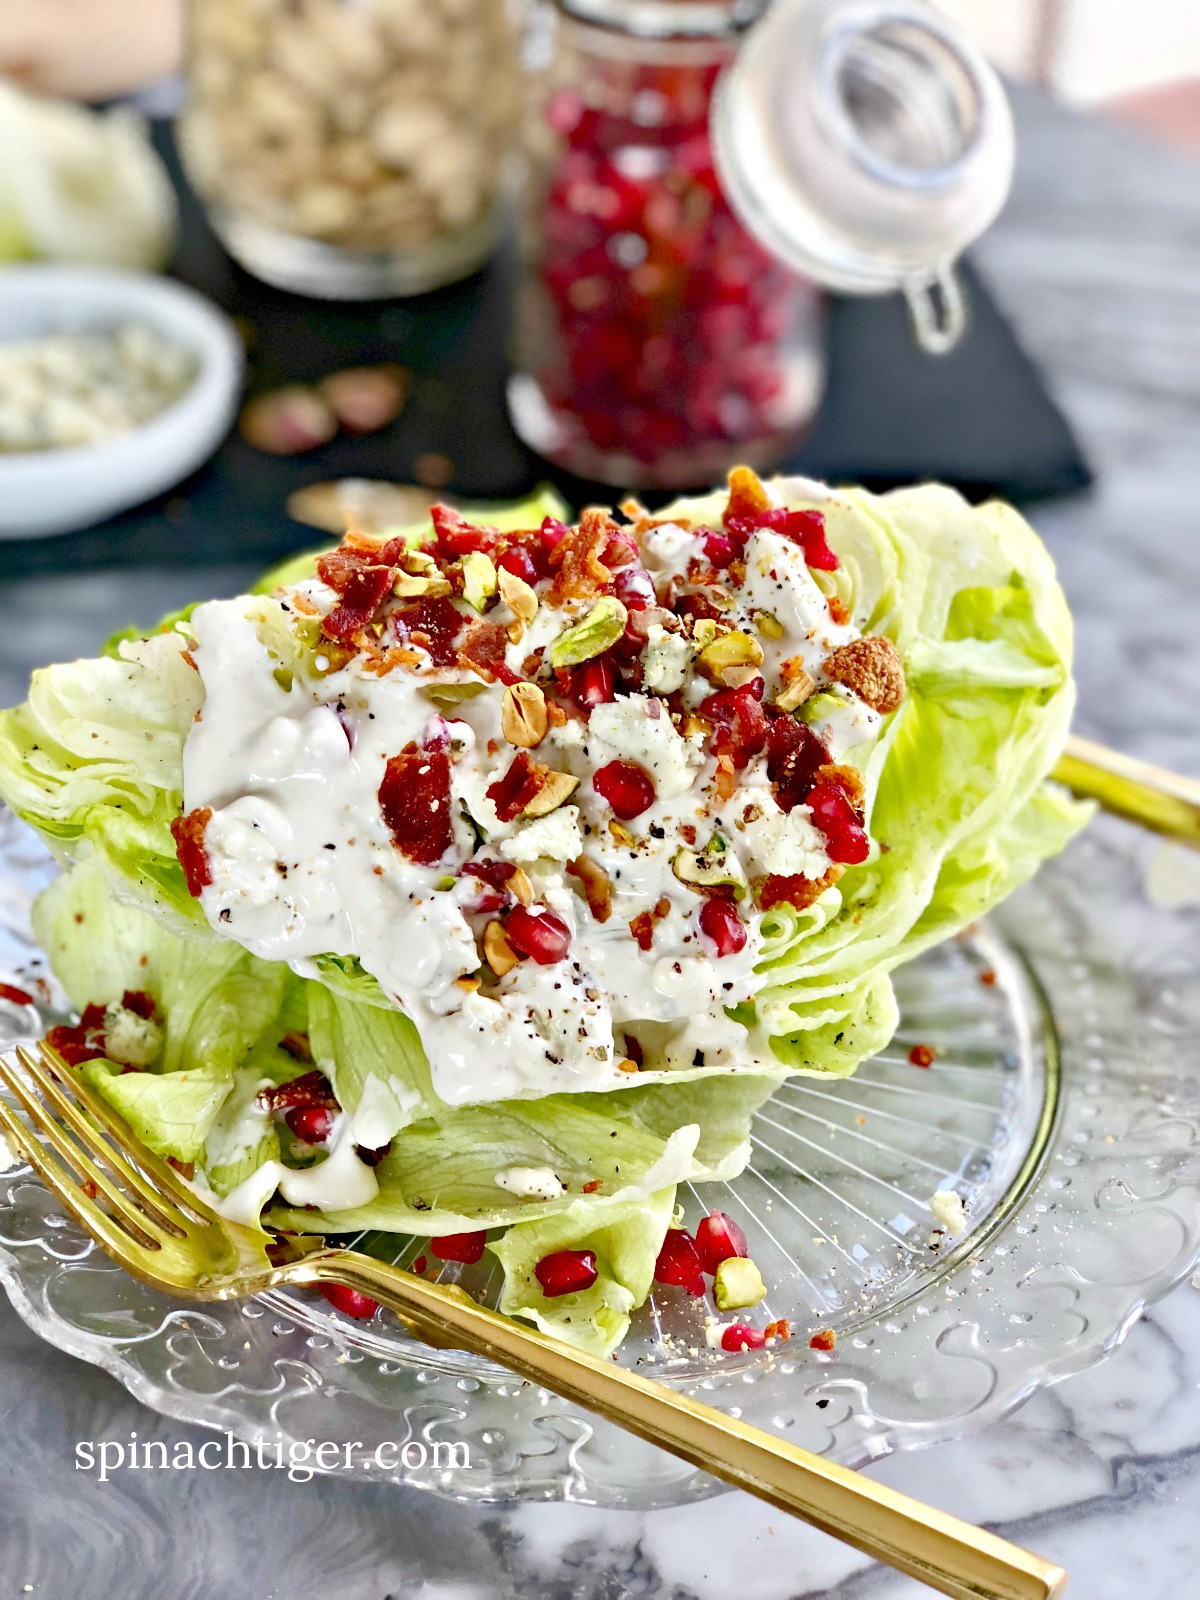 The Perfect Party Wedge Salad from Spinach Tiger